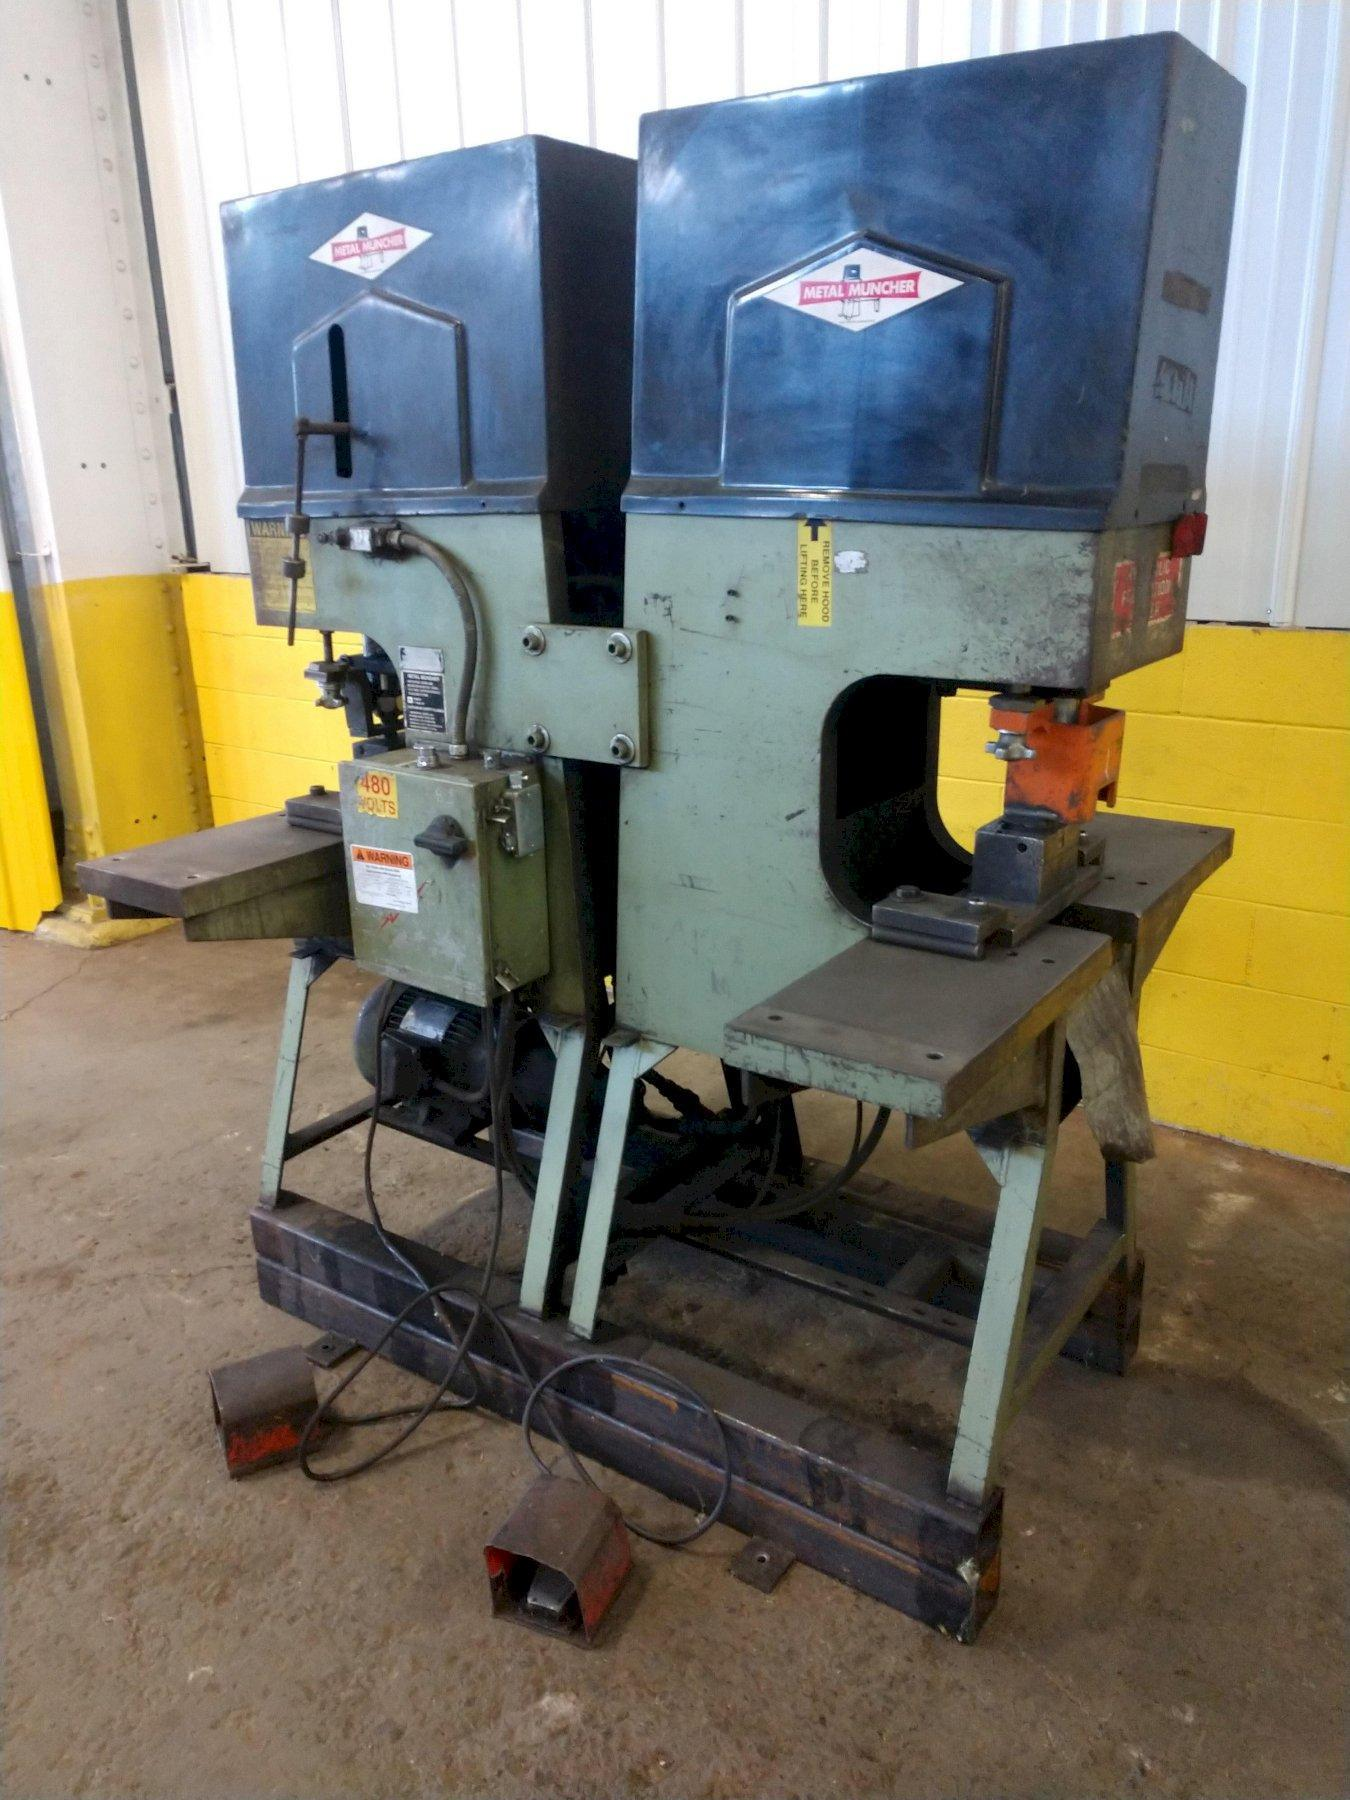 (2) 70 TON METAL MUNCHER MODEL DP70 SINGLE END HYDRAULIC PUNCHES: STOCK #13430